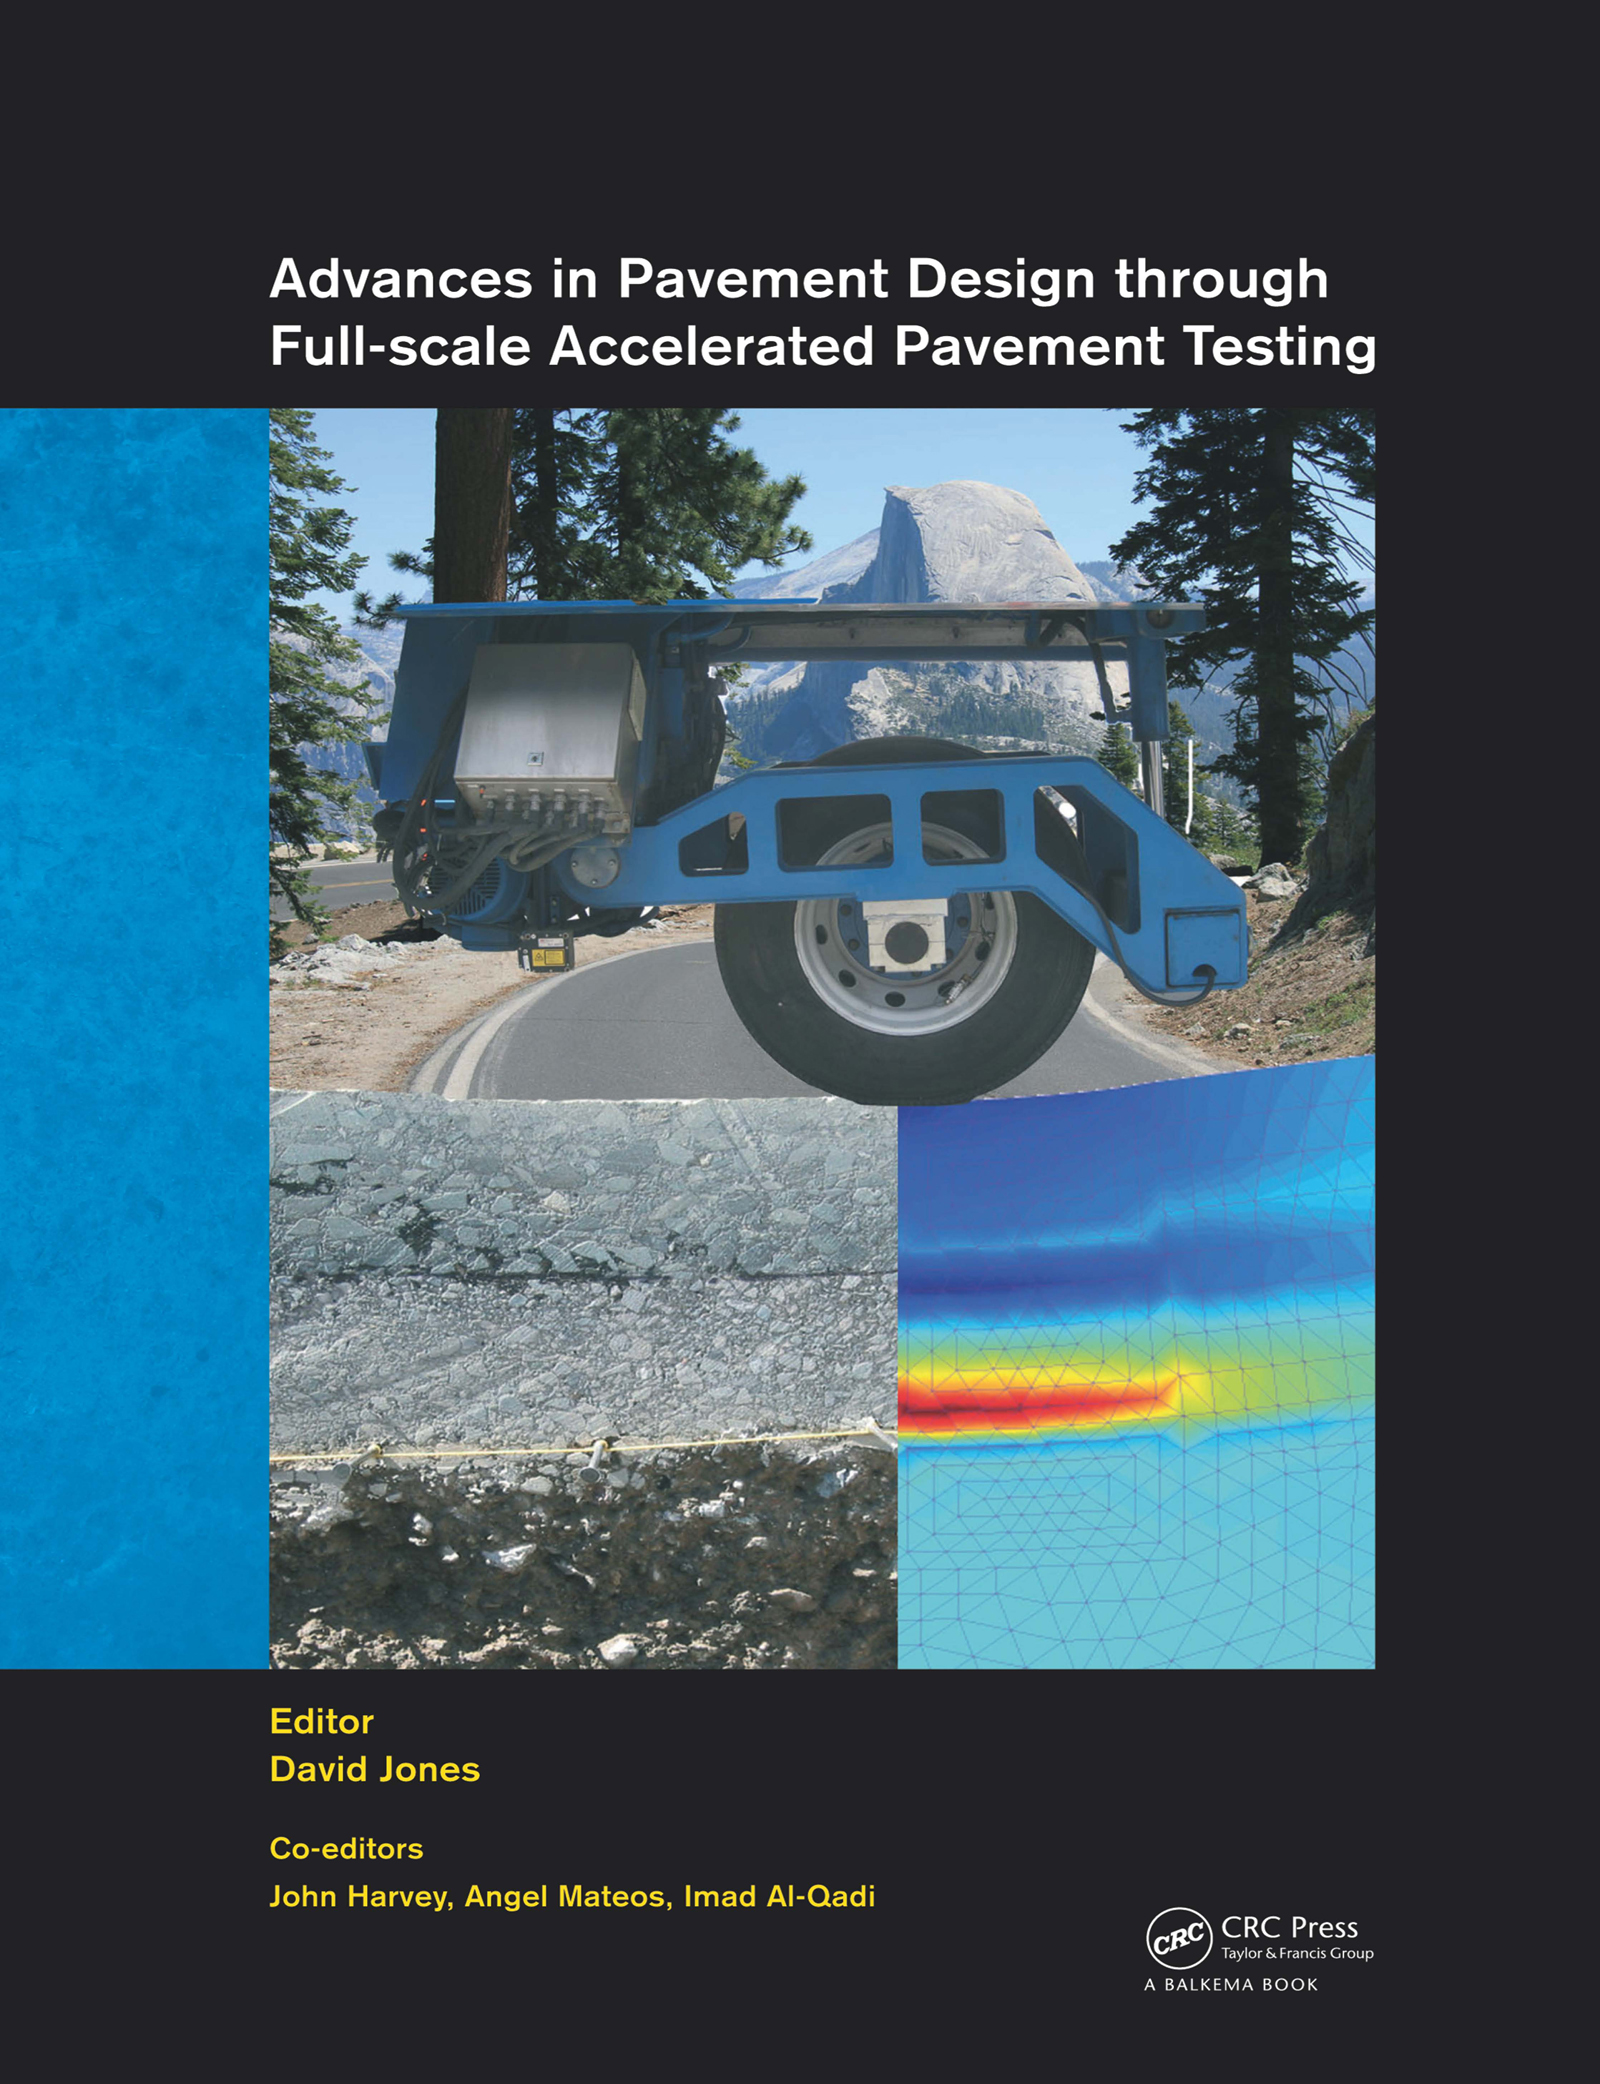 Advances in Pavement Design through Full-scale Accelerated Pavement Testing: 1st Edition (Pack - Book and CD) book cover